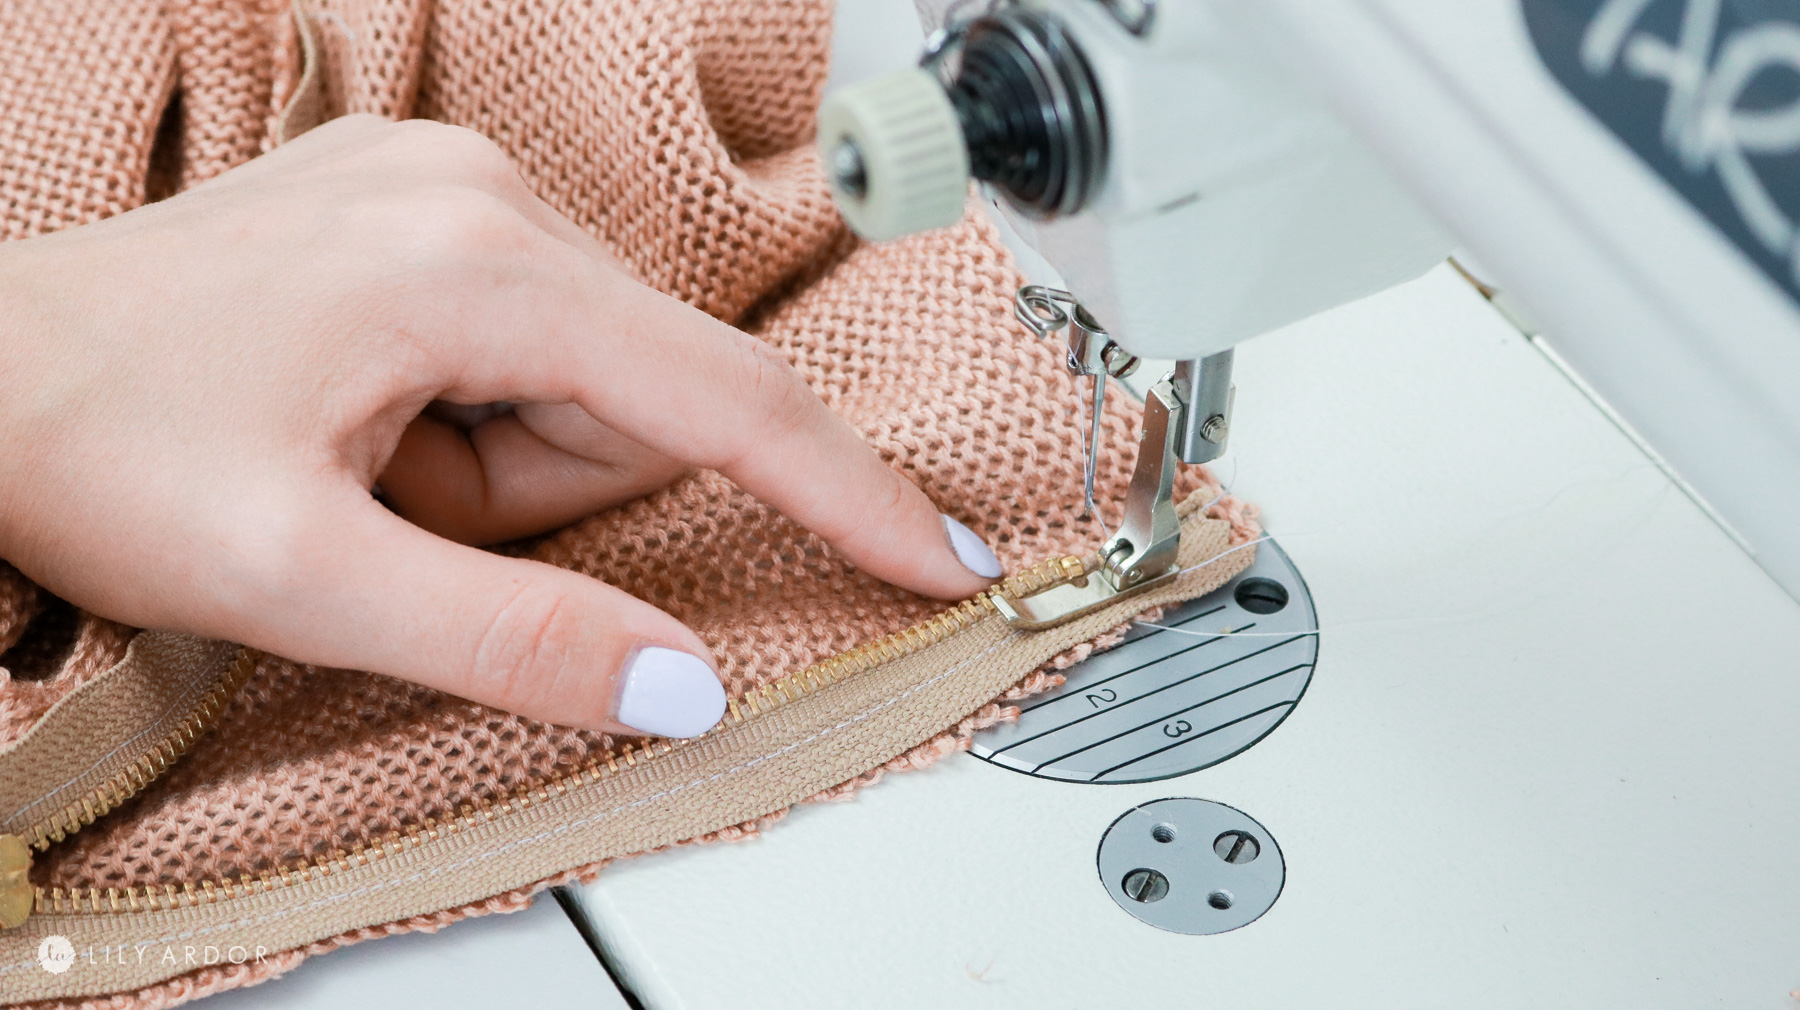 sewing on a zipper